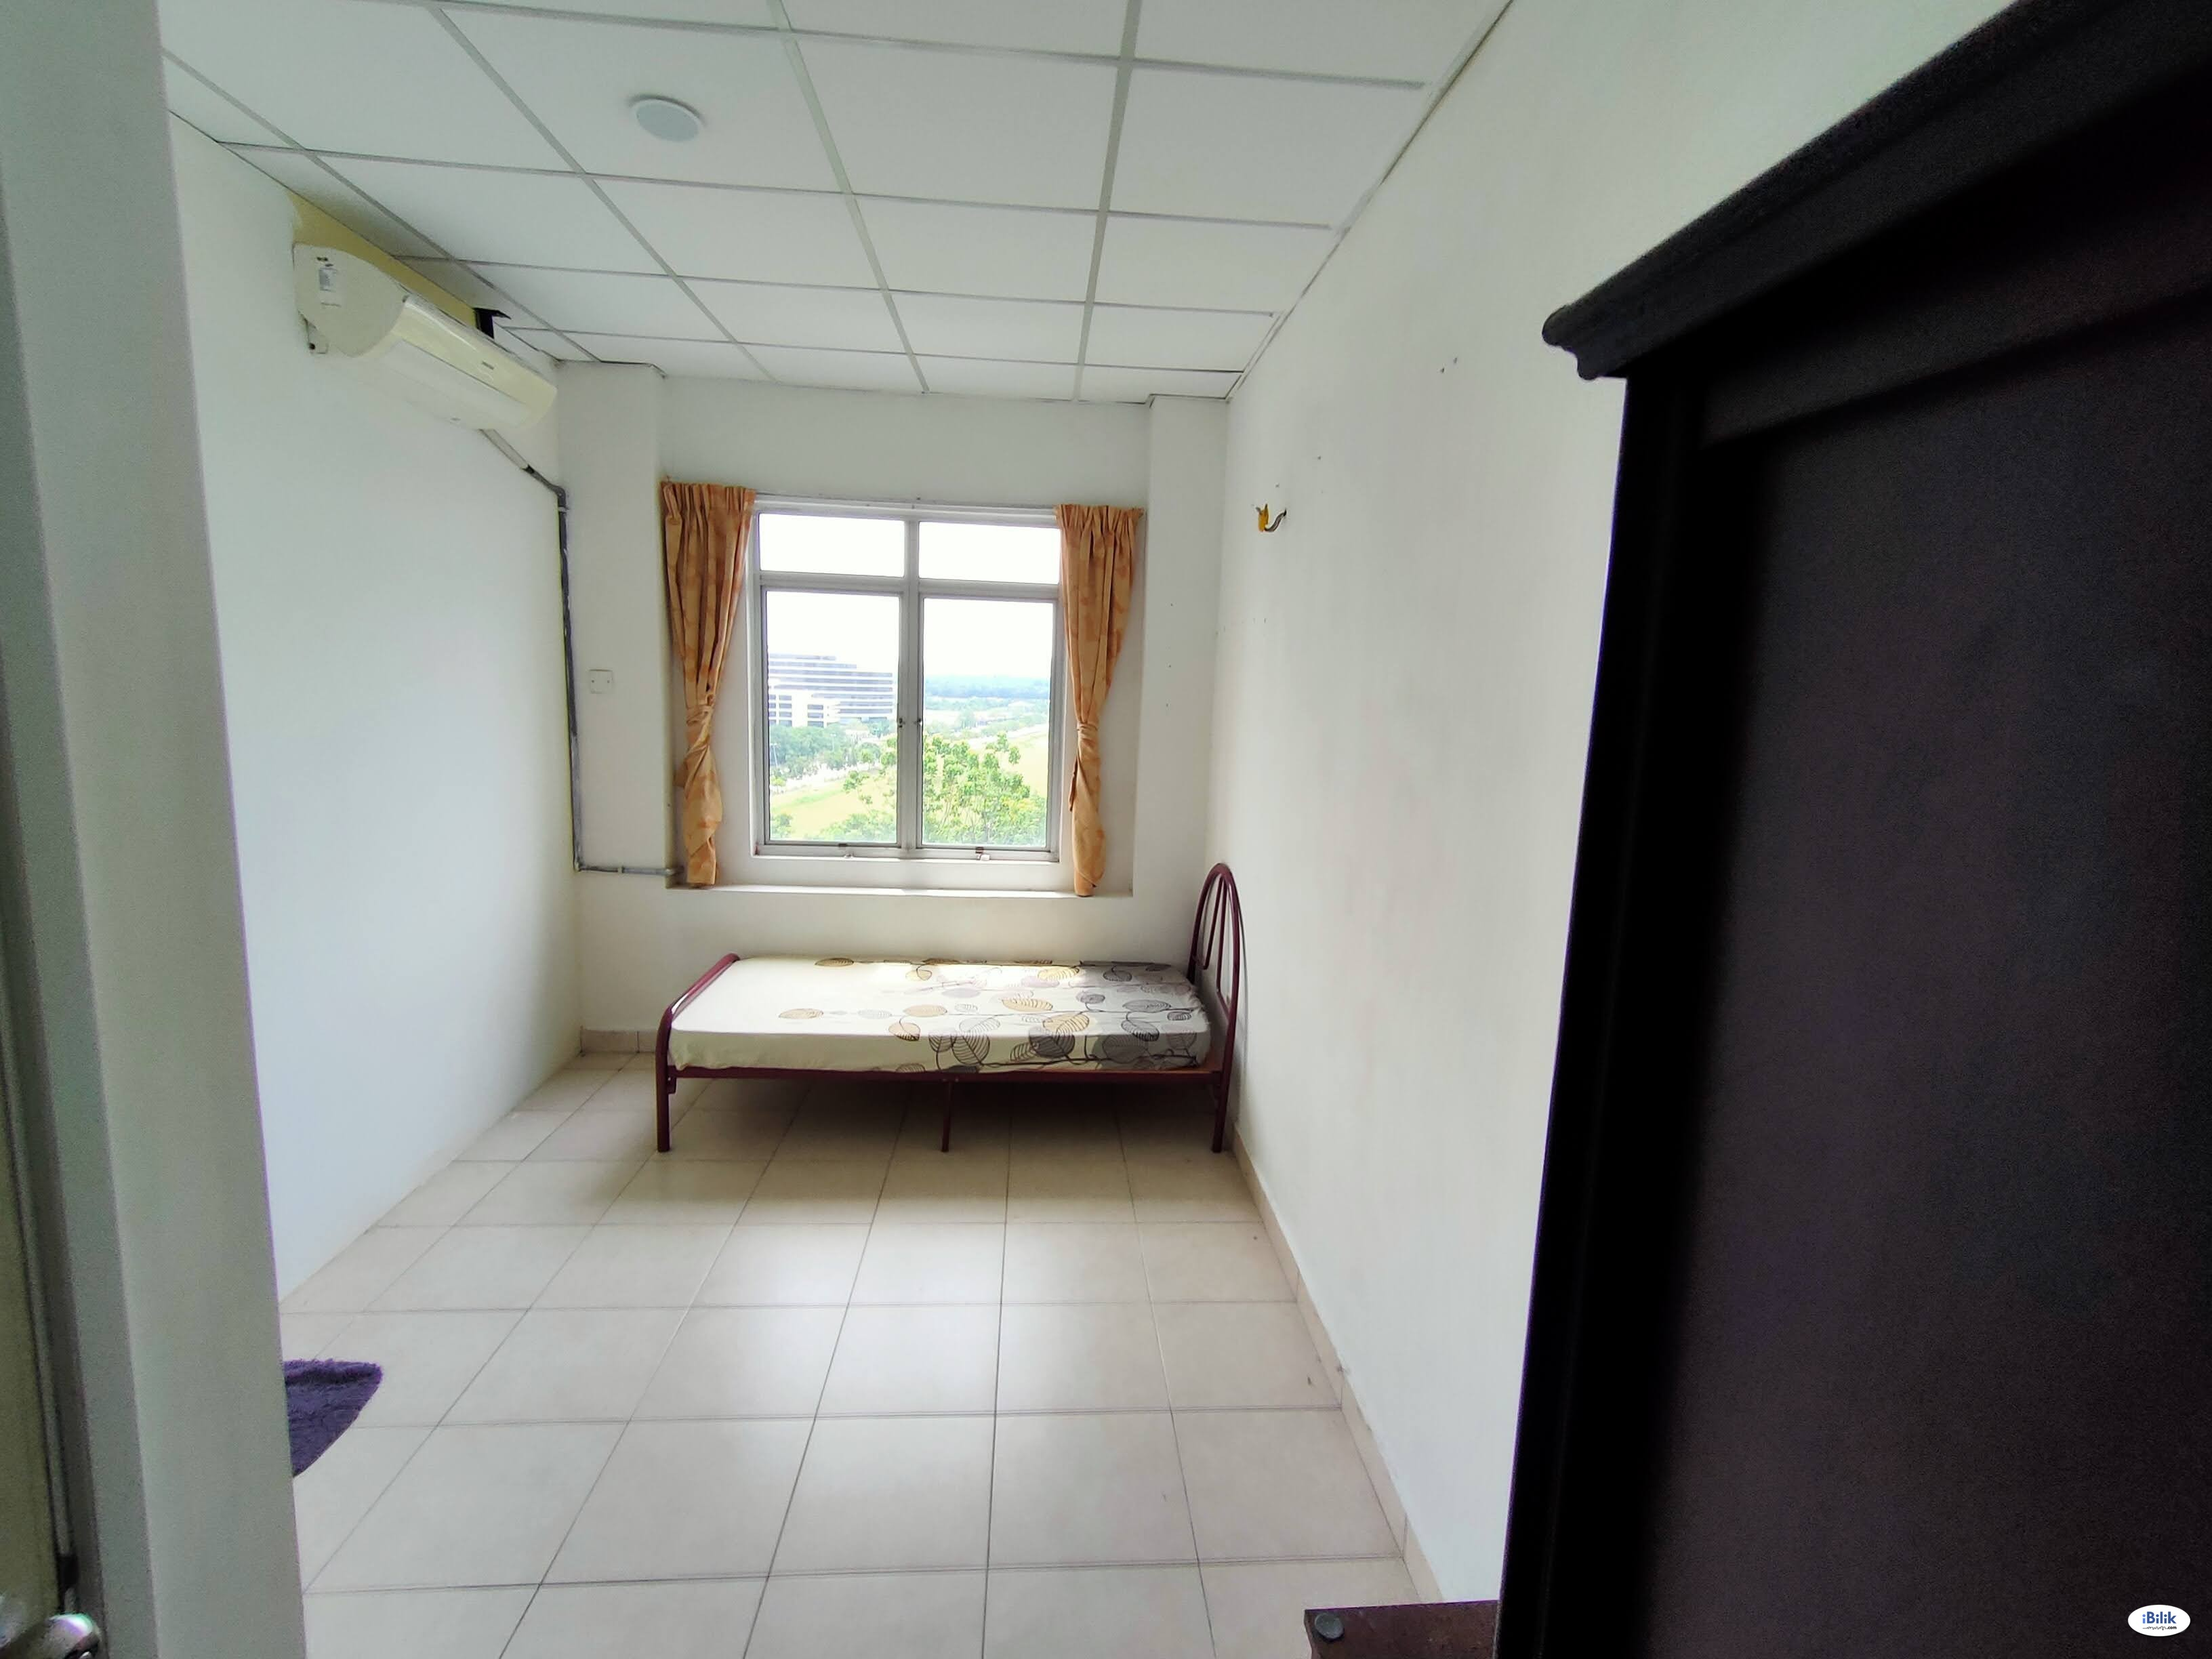 Cyberia Smarthome furnished NONsharing middle room RM350 airconditioned.